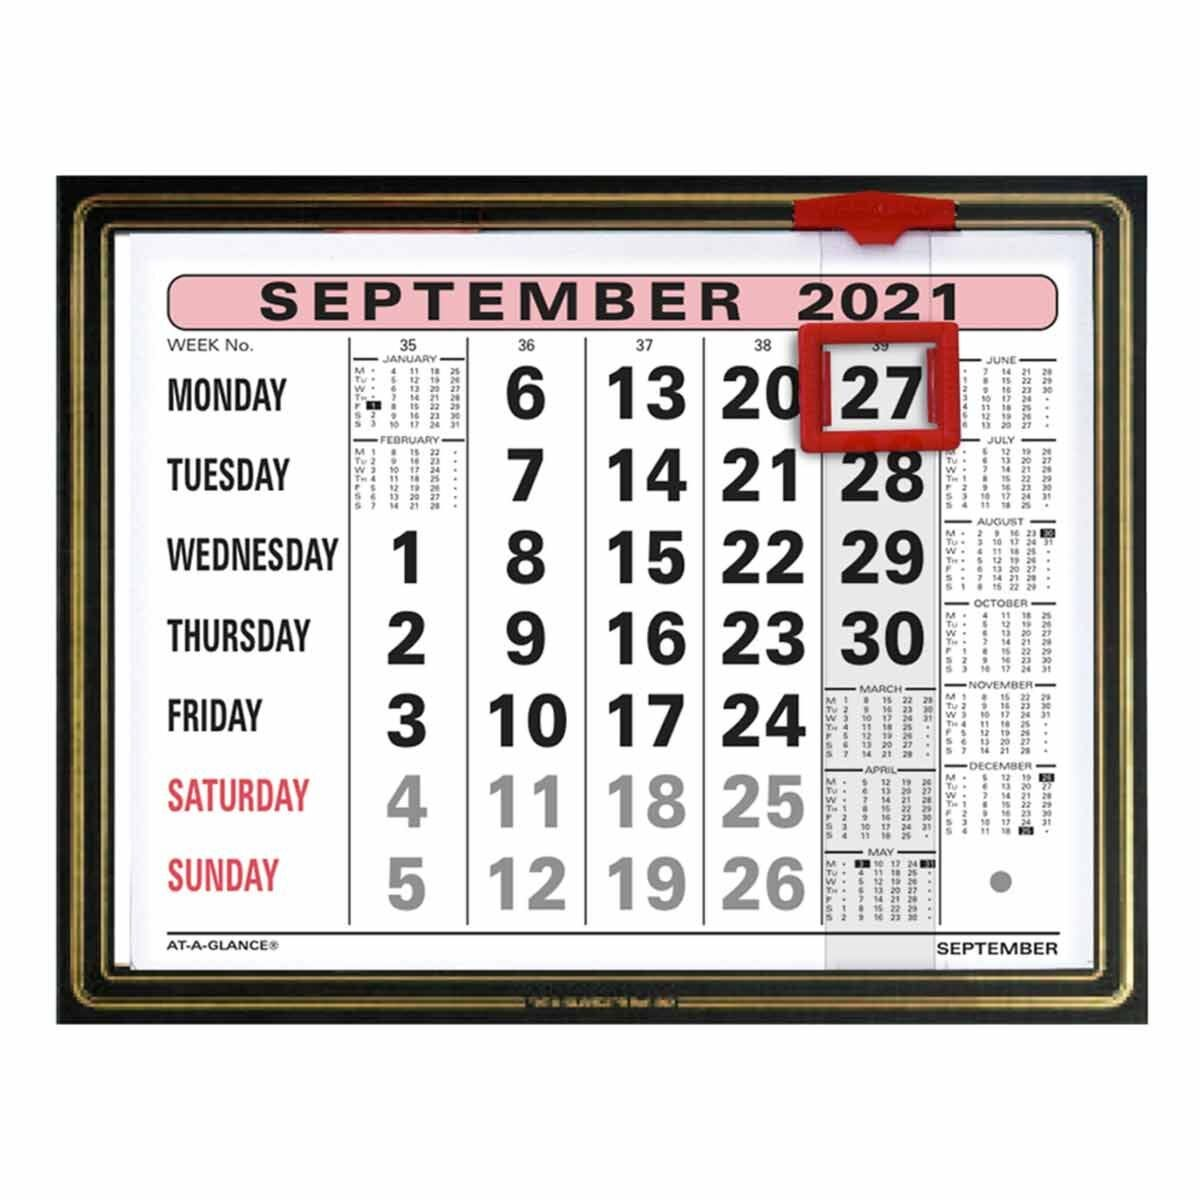 At-A-Glance Ornate Monthly Calendar 2021